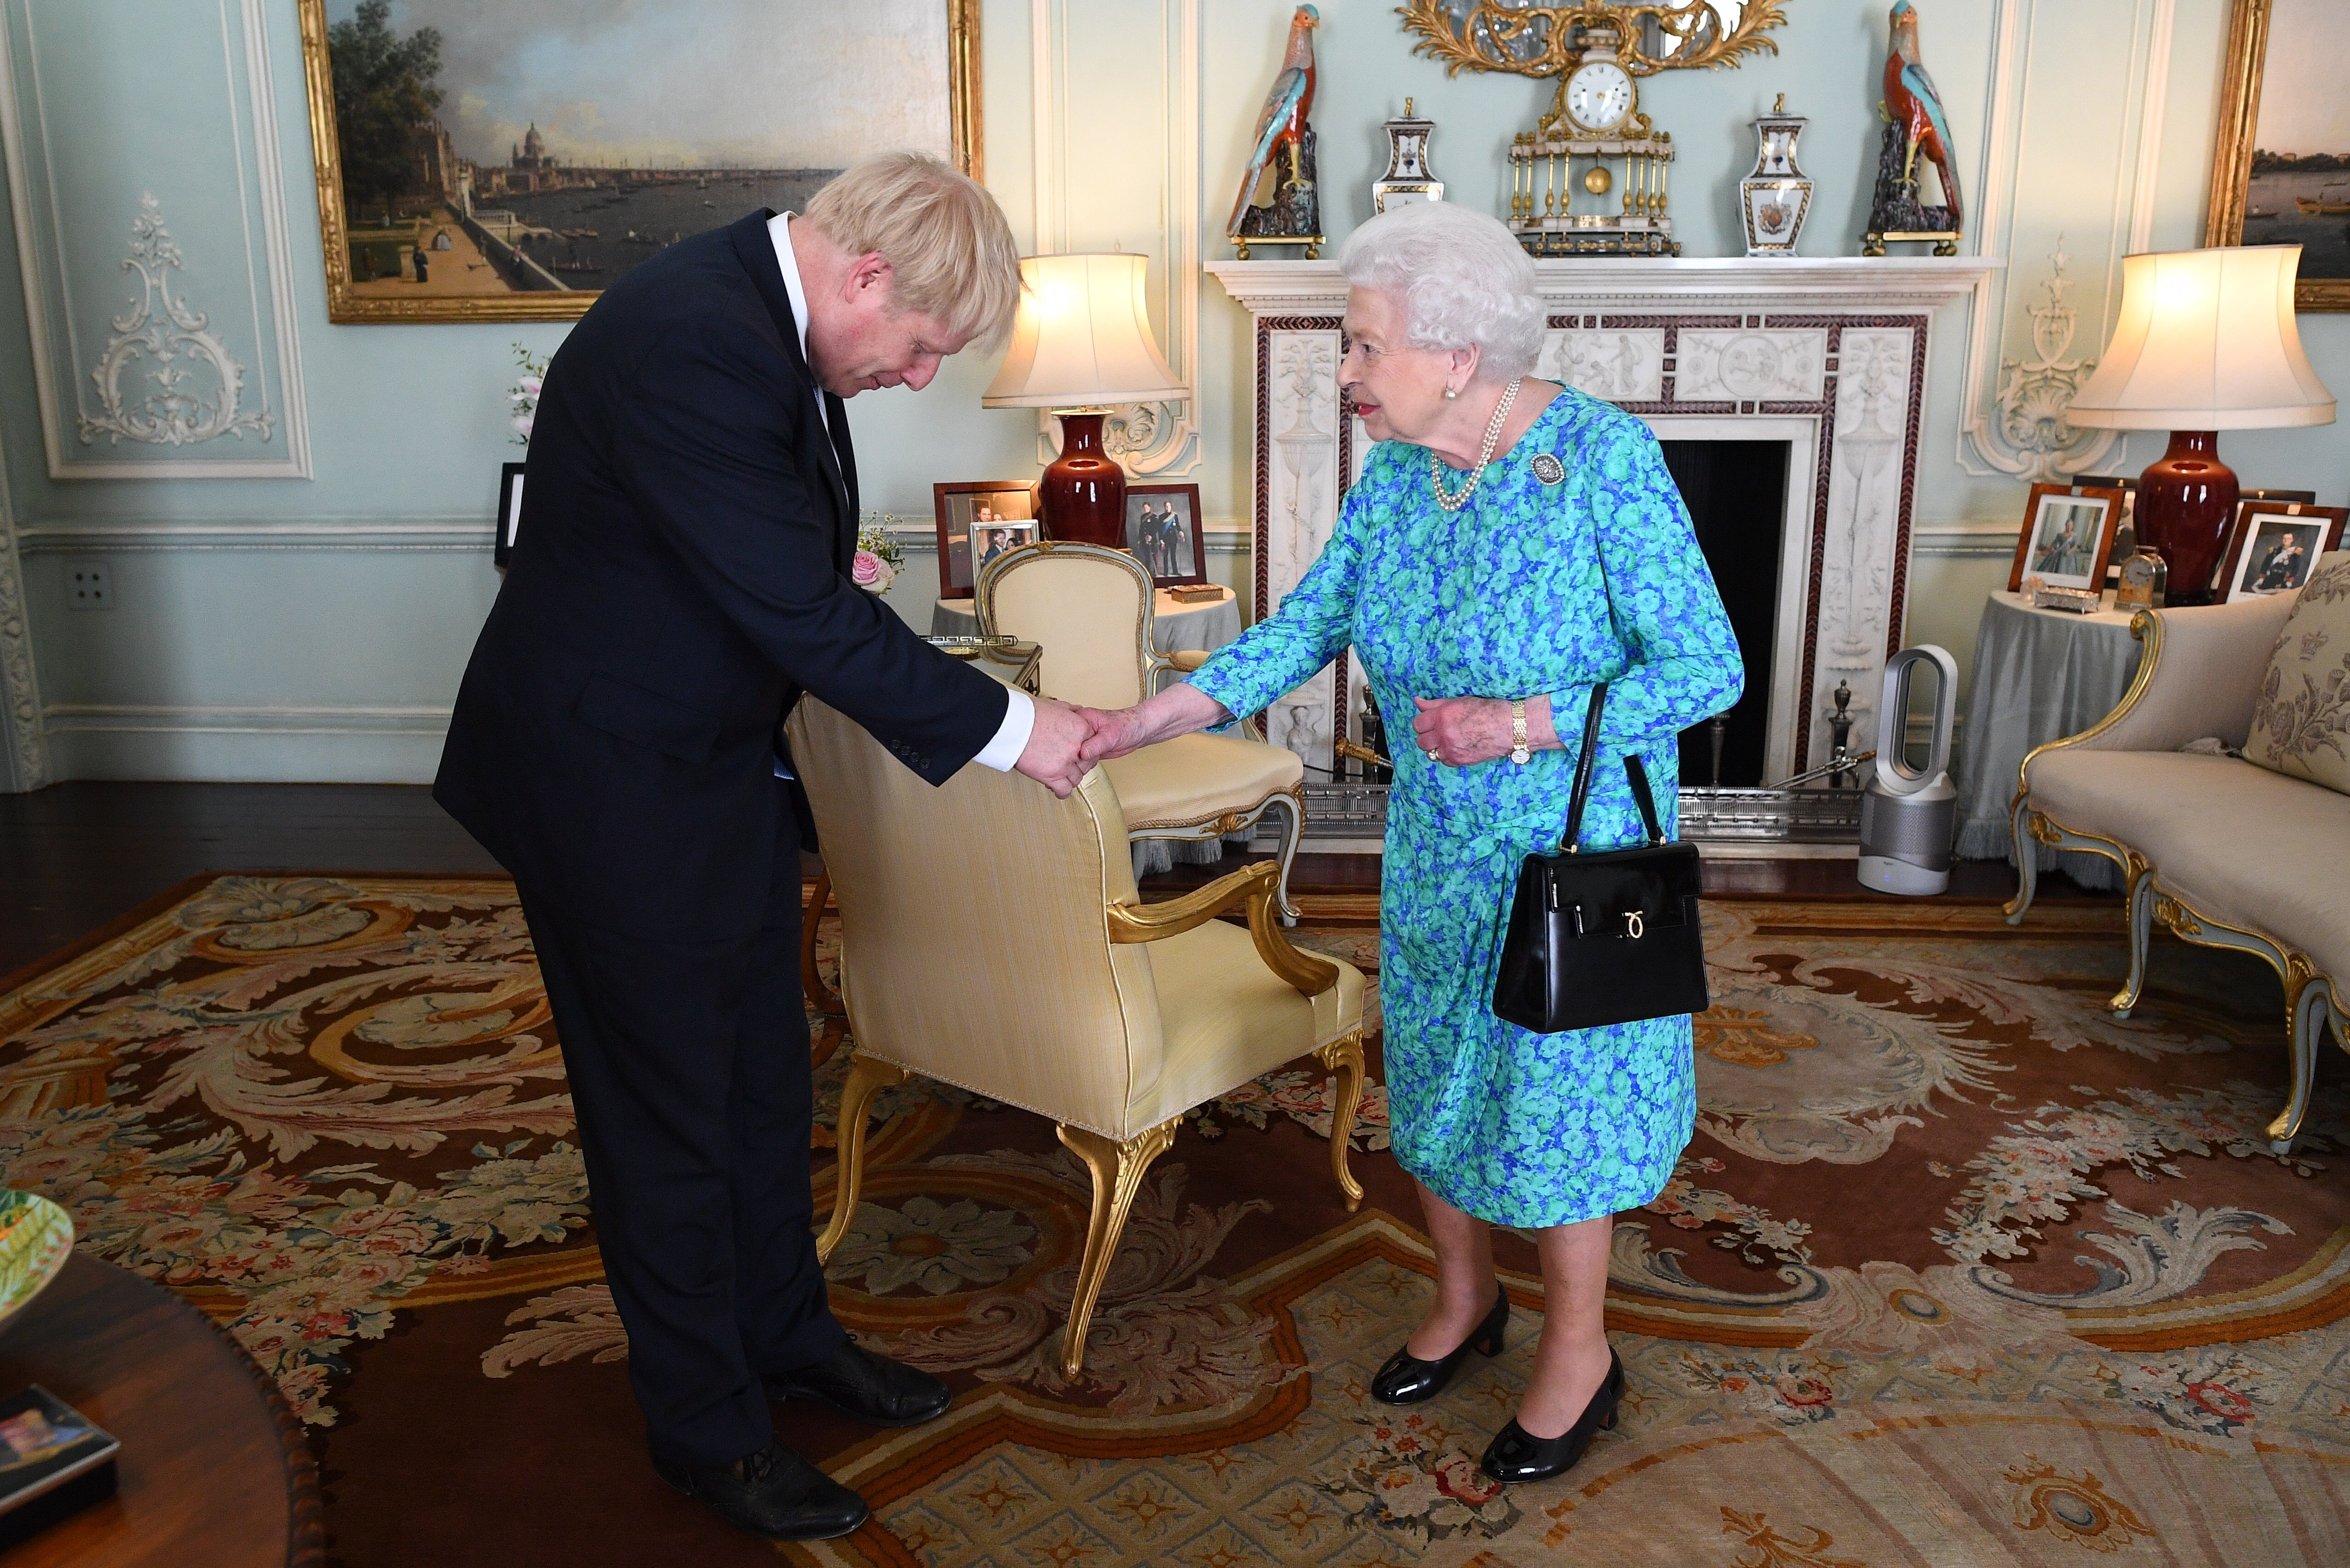 Queen Elizabeth II greets the Prime Minister of the United Kingdom, Boris Johnson in July 2019 | Photo: Getty Images